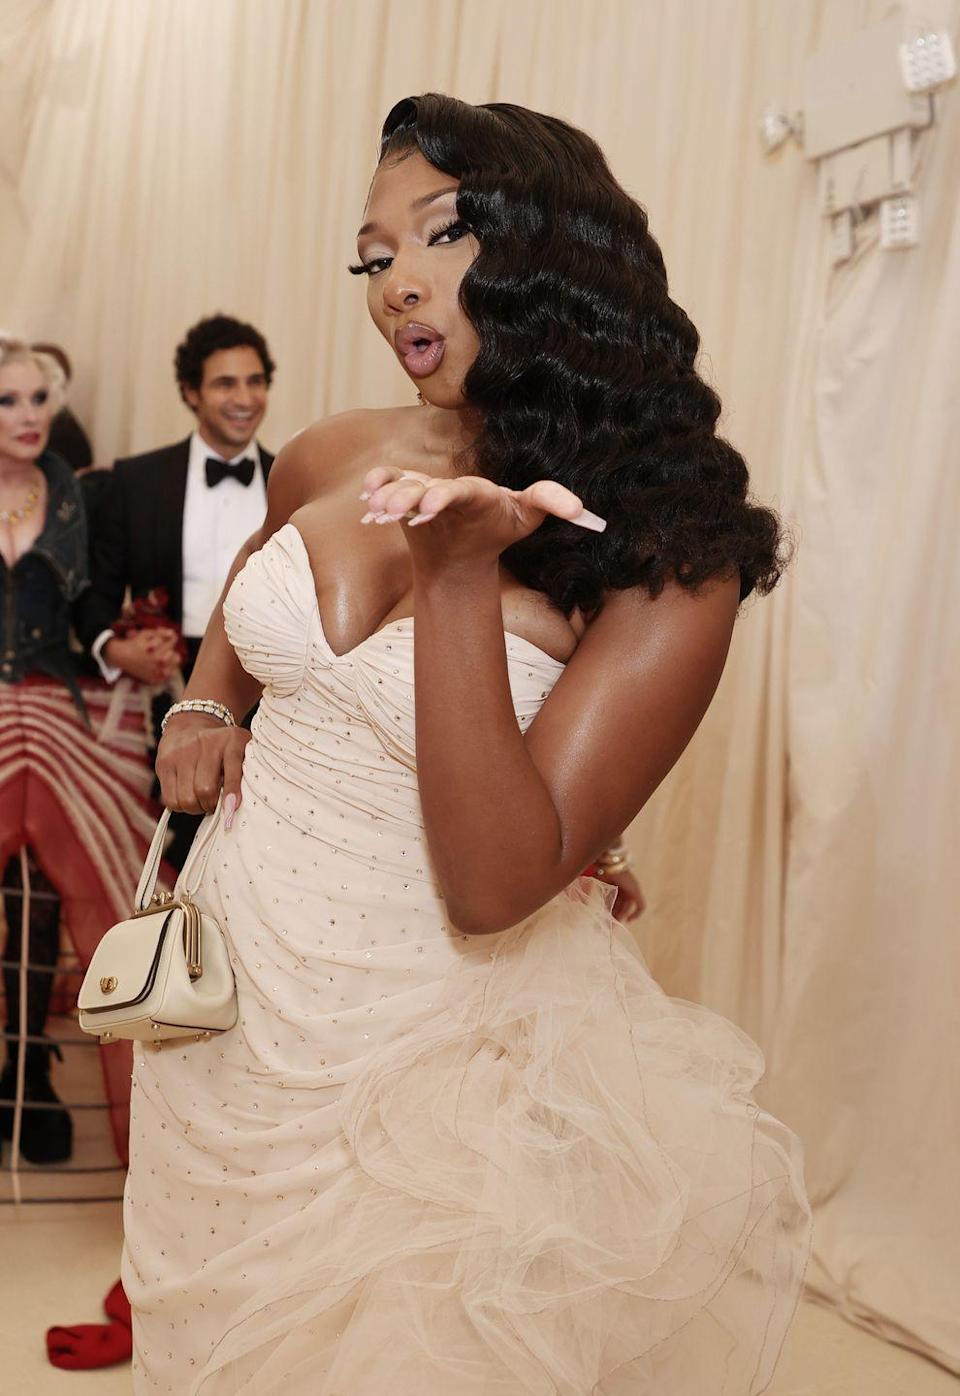 <p>The queen of hair switch-ups walked the red carpet with voluminous Hollywood waves that were swept to the side. She kept her makeup muted and neutral with soft nudes and mauves on the lips and eyes.</p>